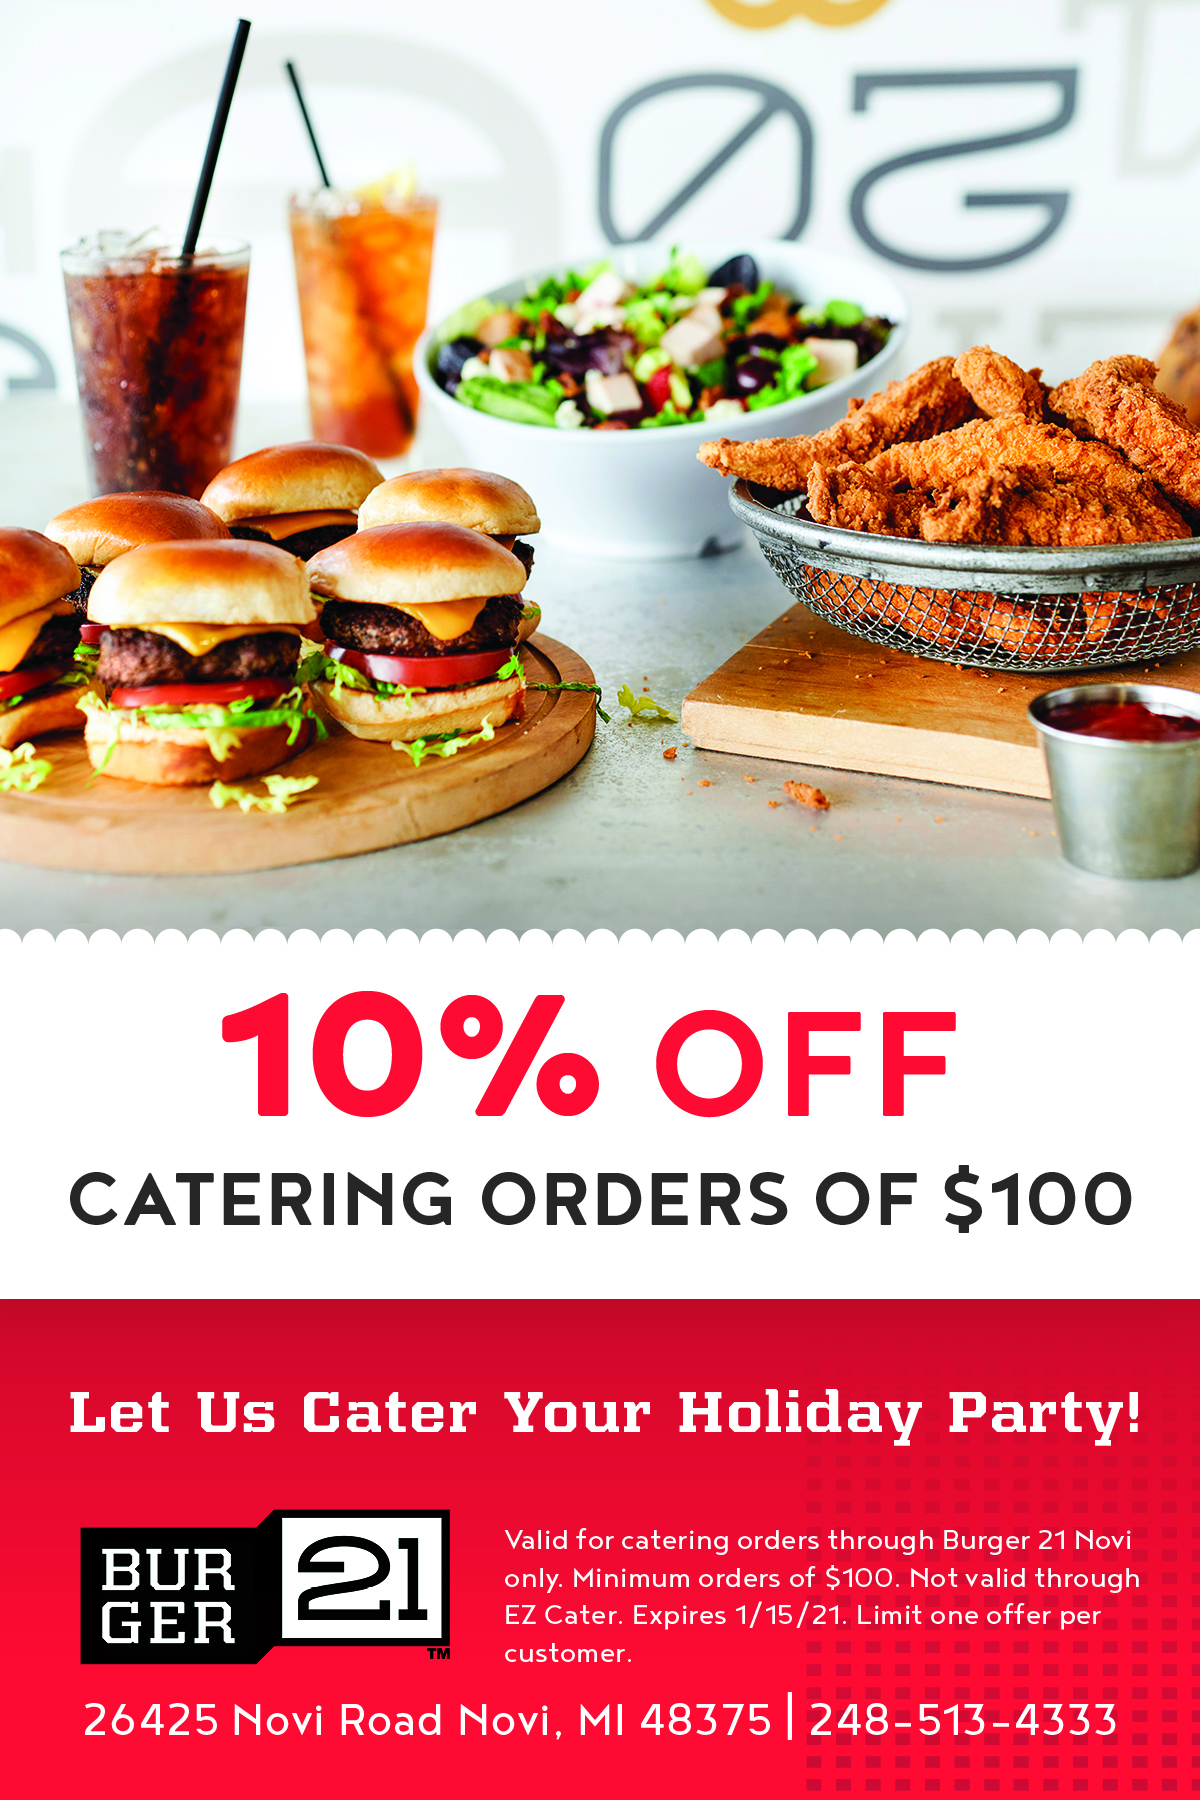 Let Us Cater Your Holiday Party